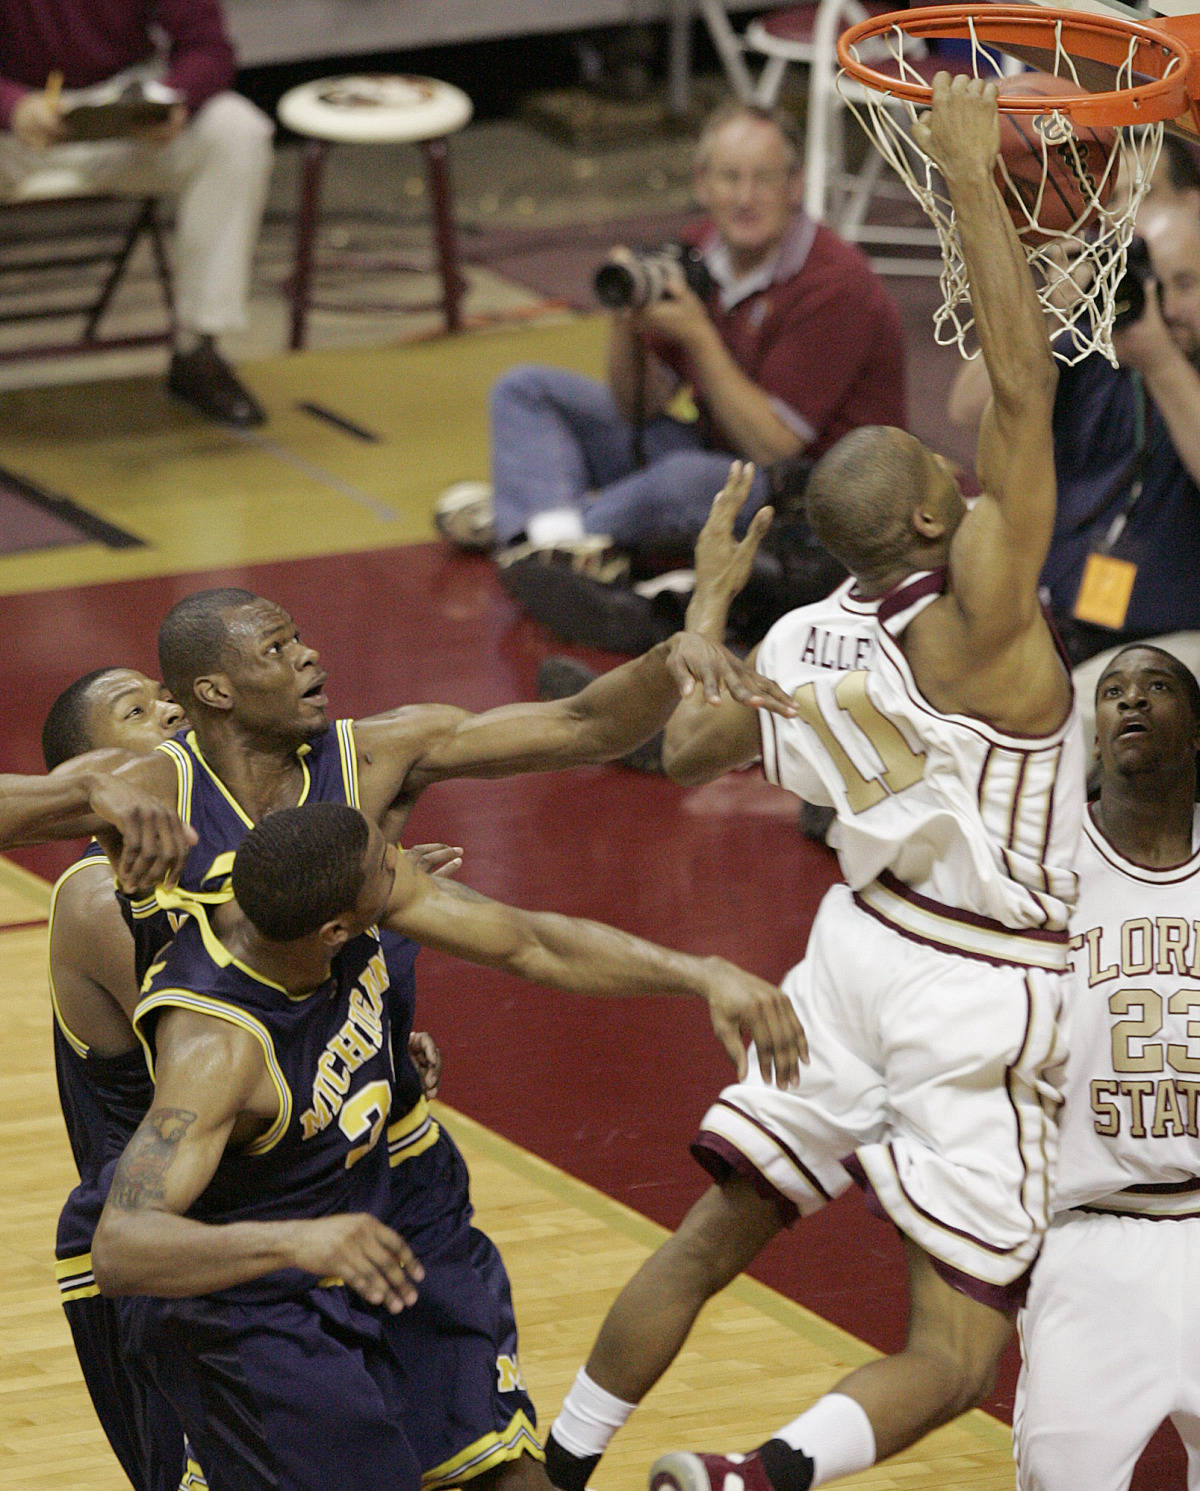 Florida State's Jerel Allen dunks in front of Michigan defenders. (AP Photo/Steve Cannon)